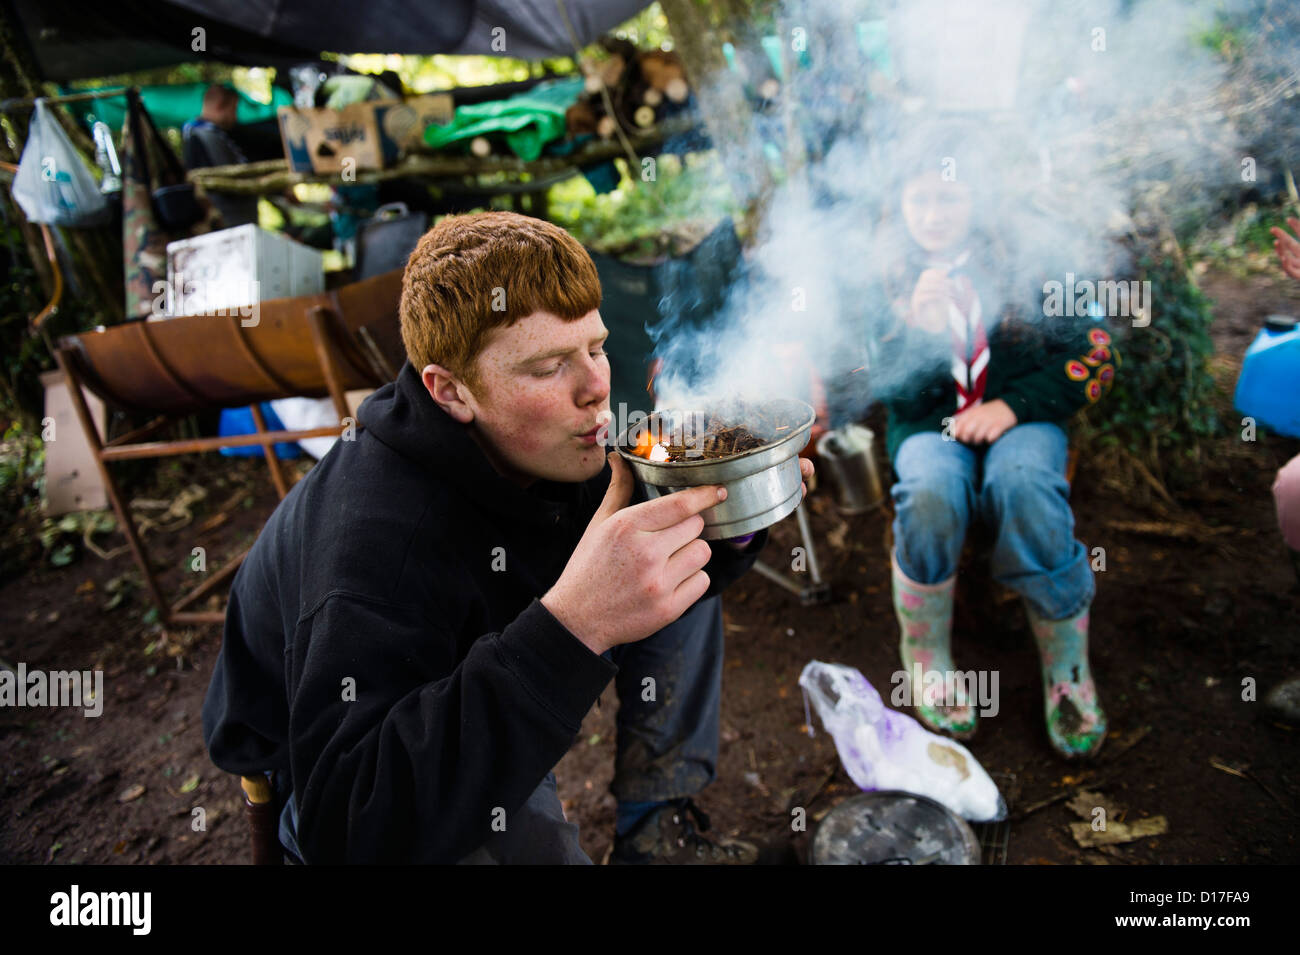 Boy Scouts Stock Photos &- Boy Scouts Stock Images - Alamy